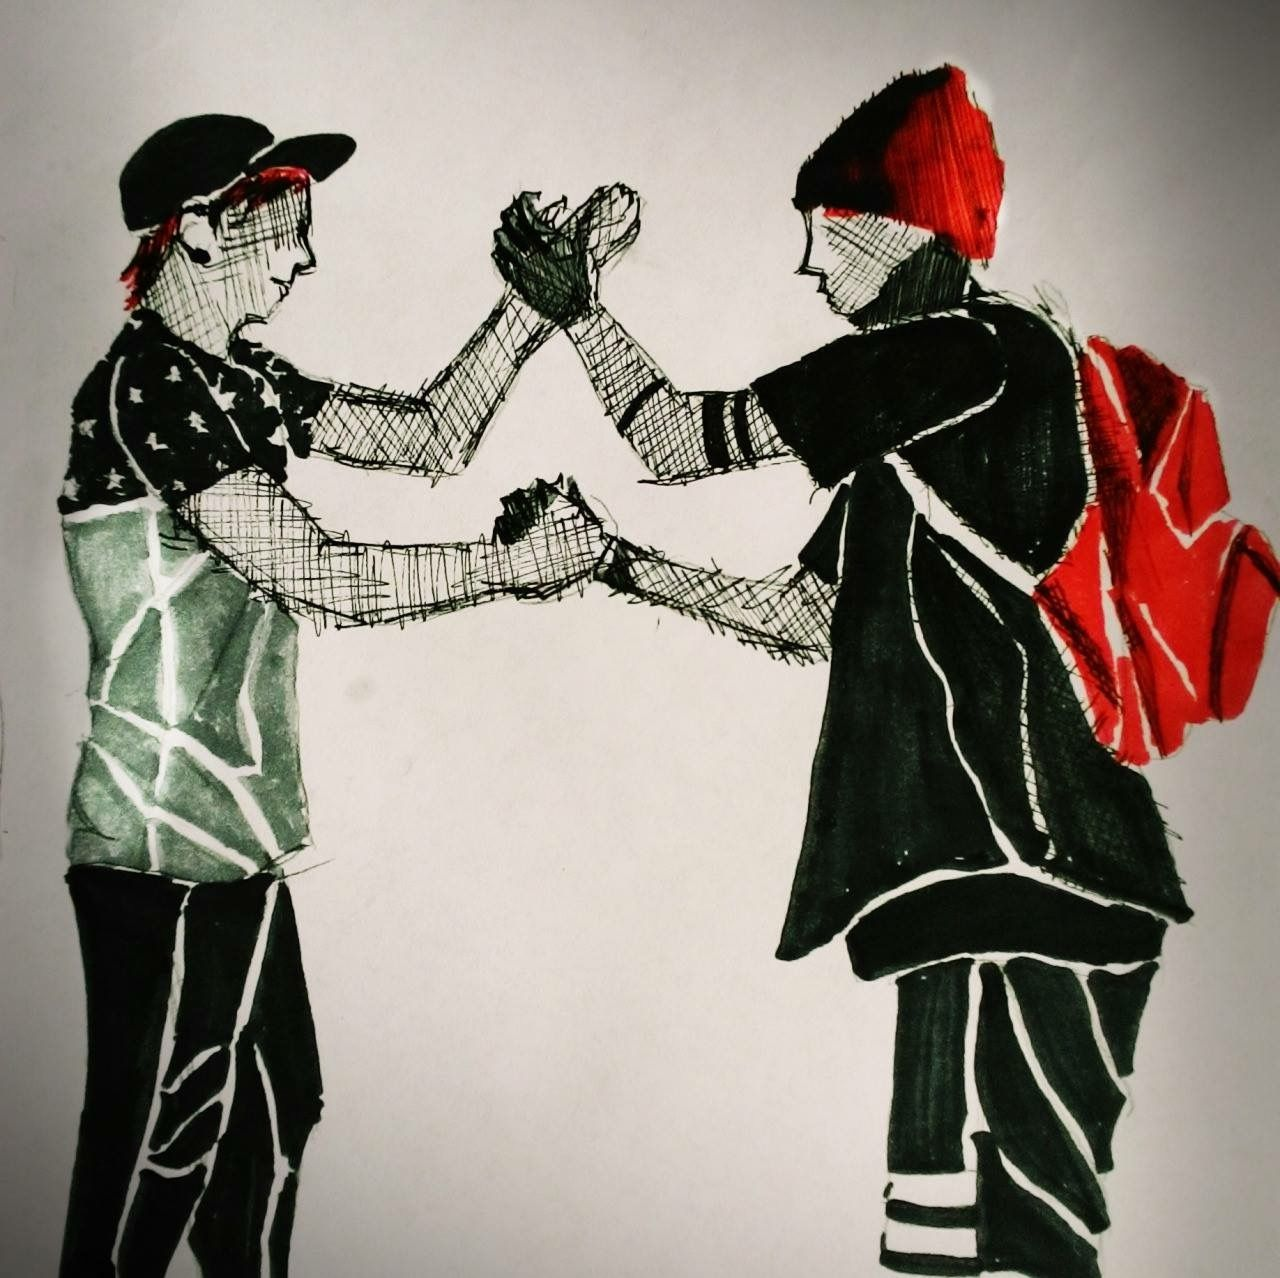 I really like this 21 Pilots fan art